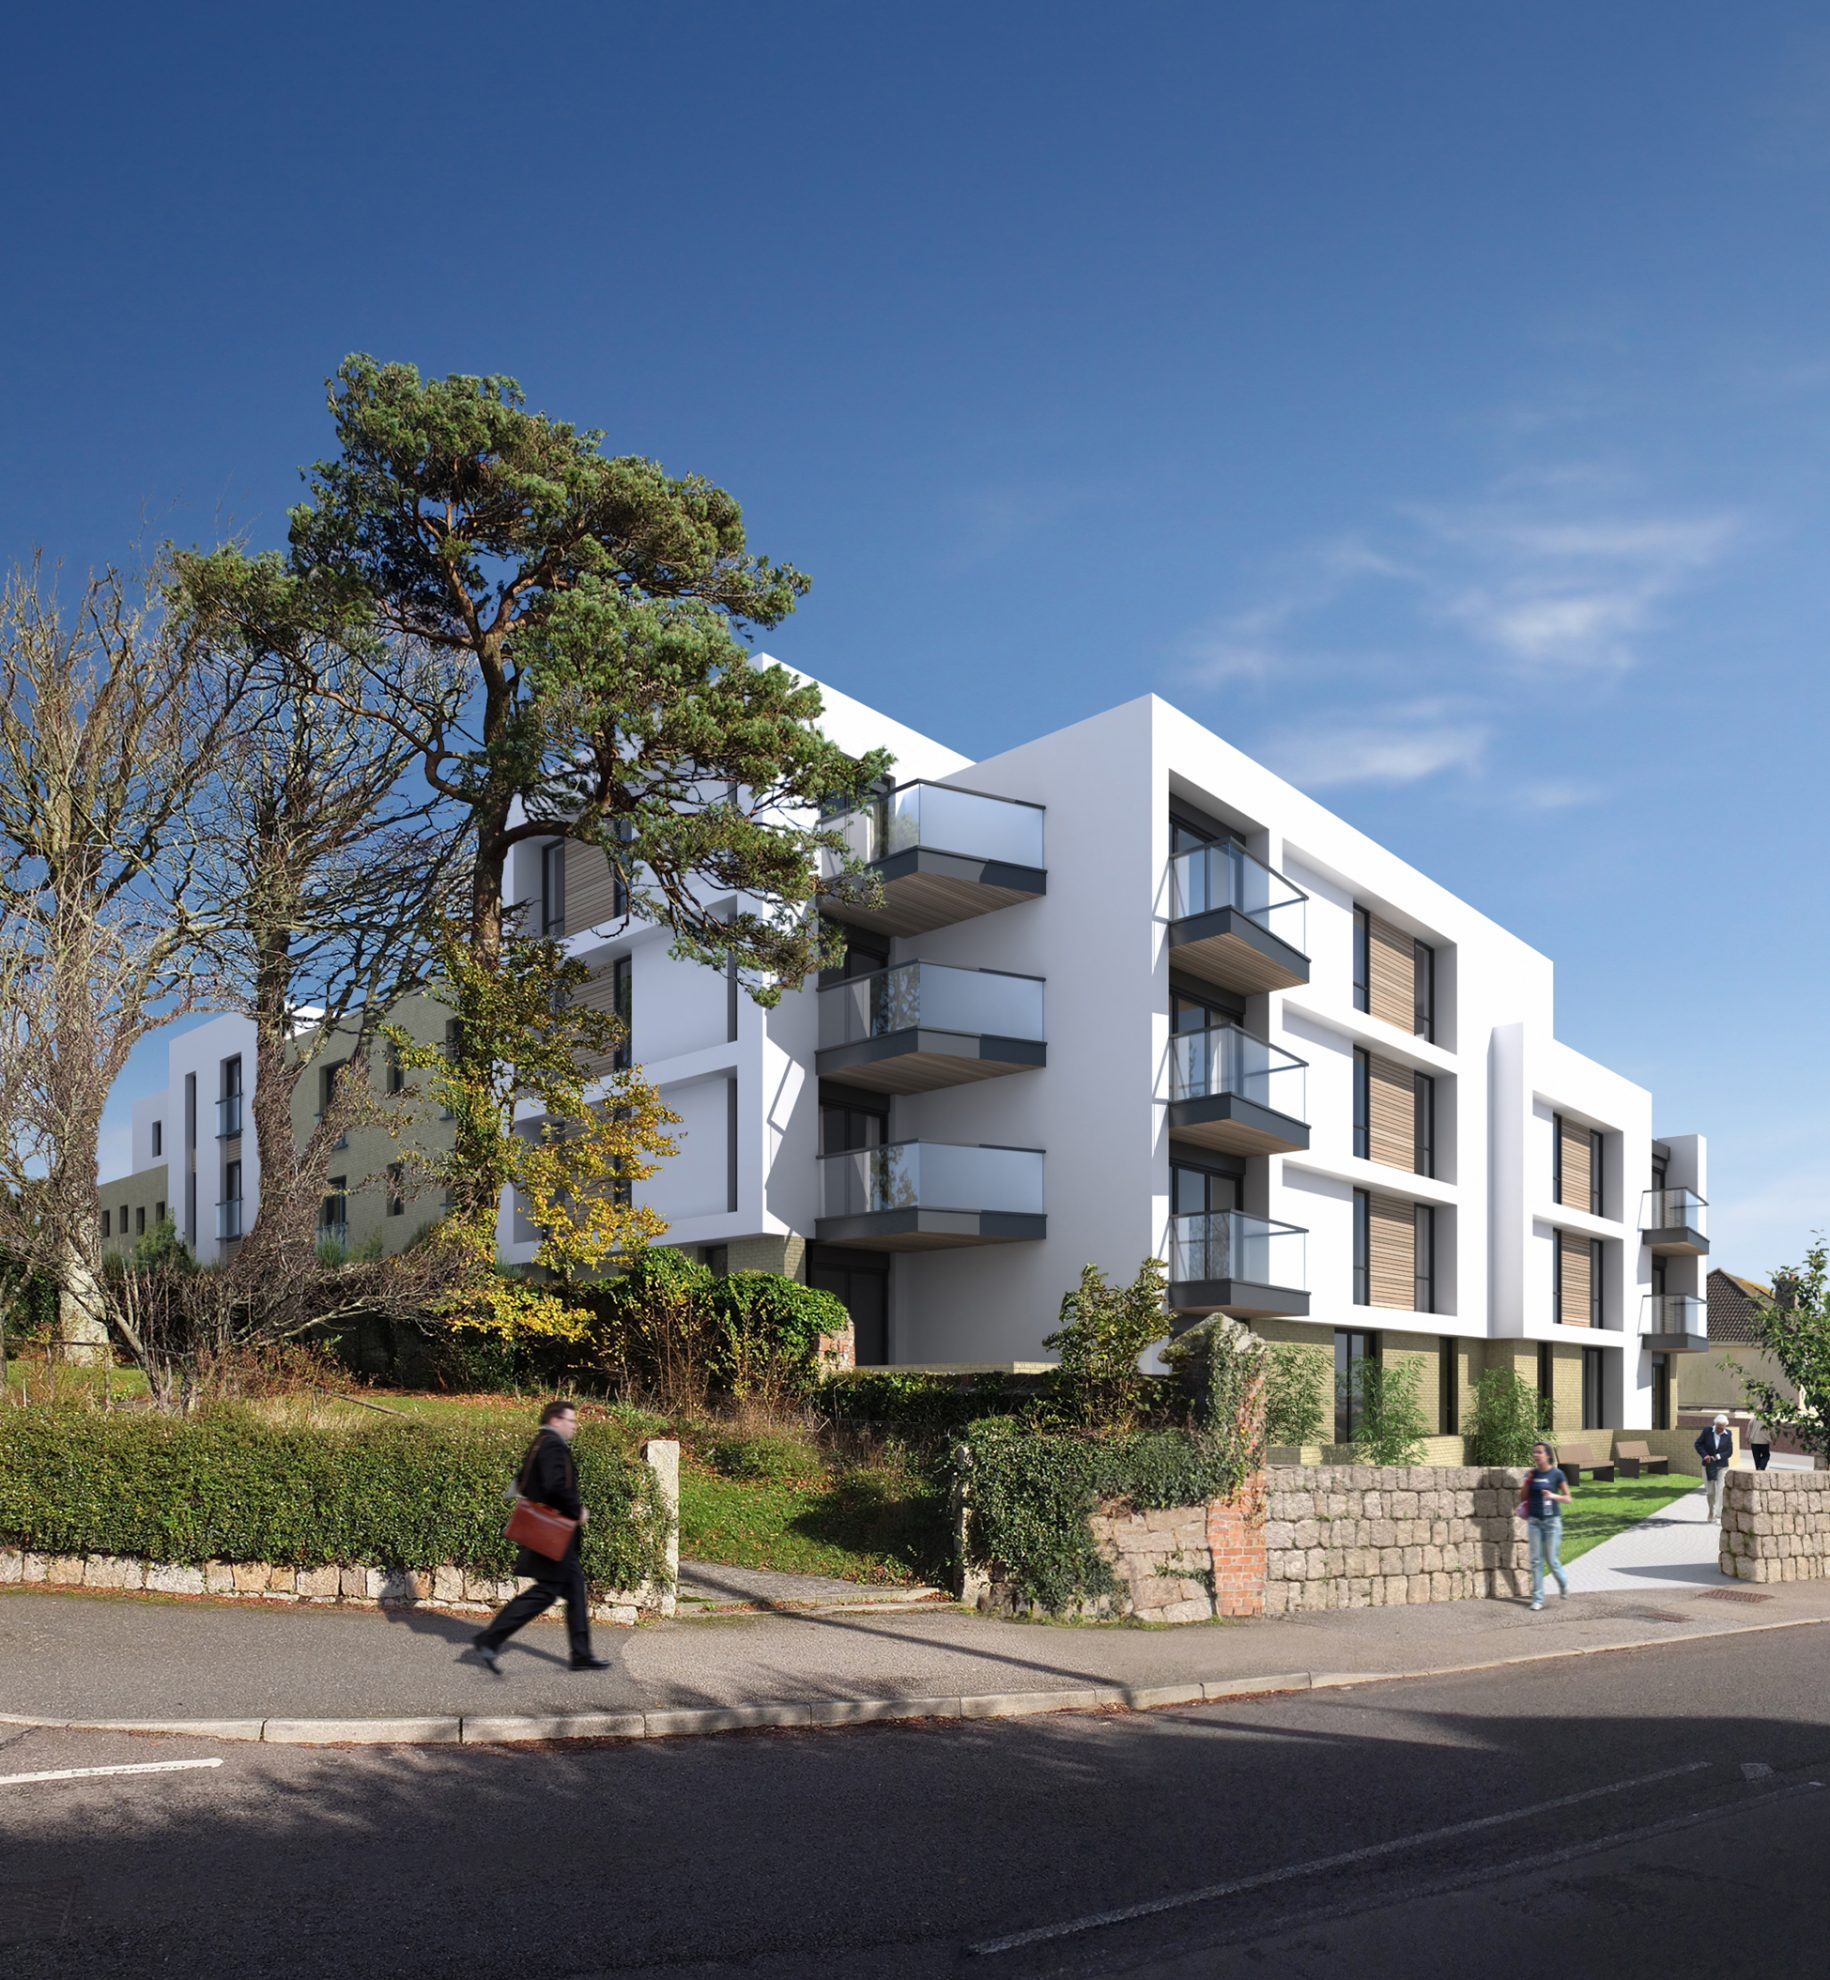 New flat apartment complex building in Cornwall - Residential Architects in Cornwall, Truro